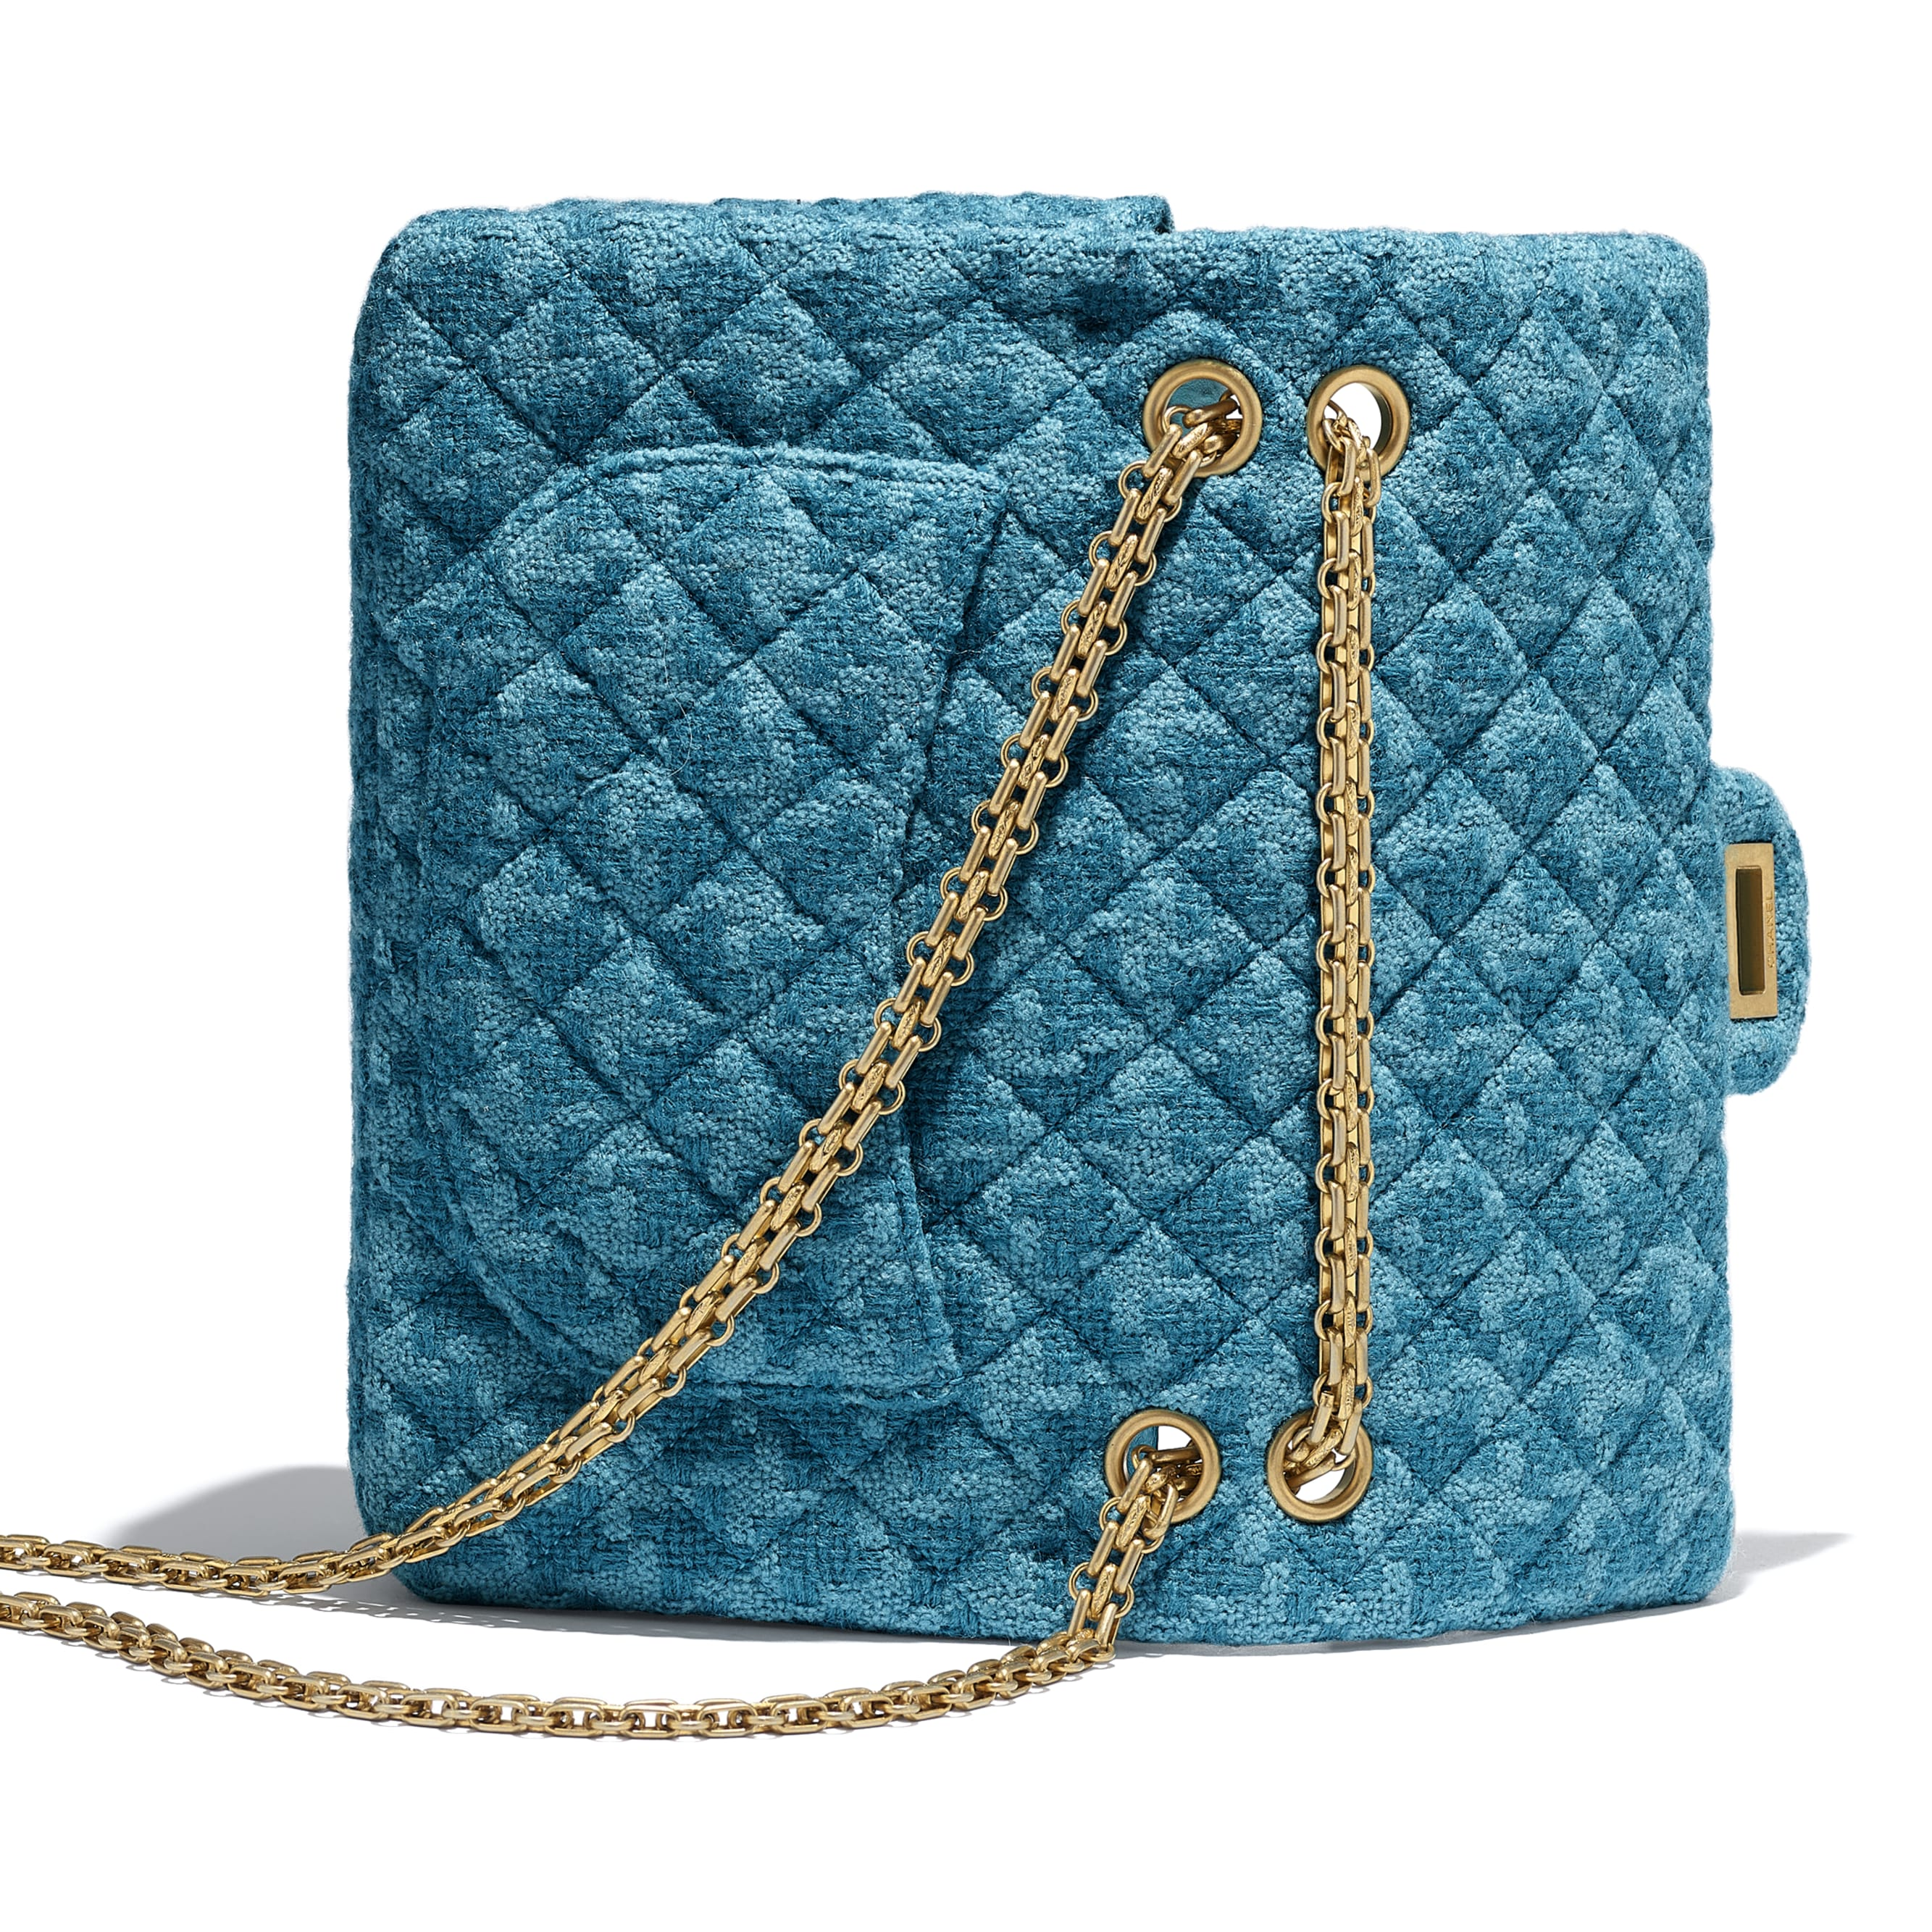 2.55 Handbag - Turquoise - Wool Tweed & Gold-Tone Metal - CHANEL - Extra view - see standard sized version